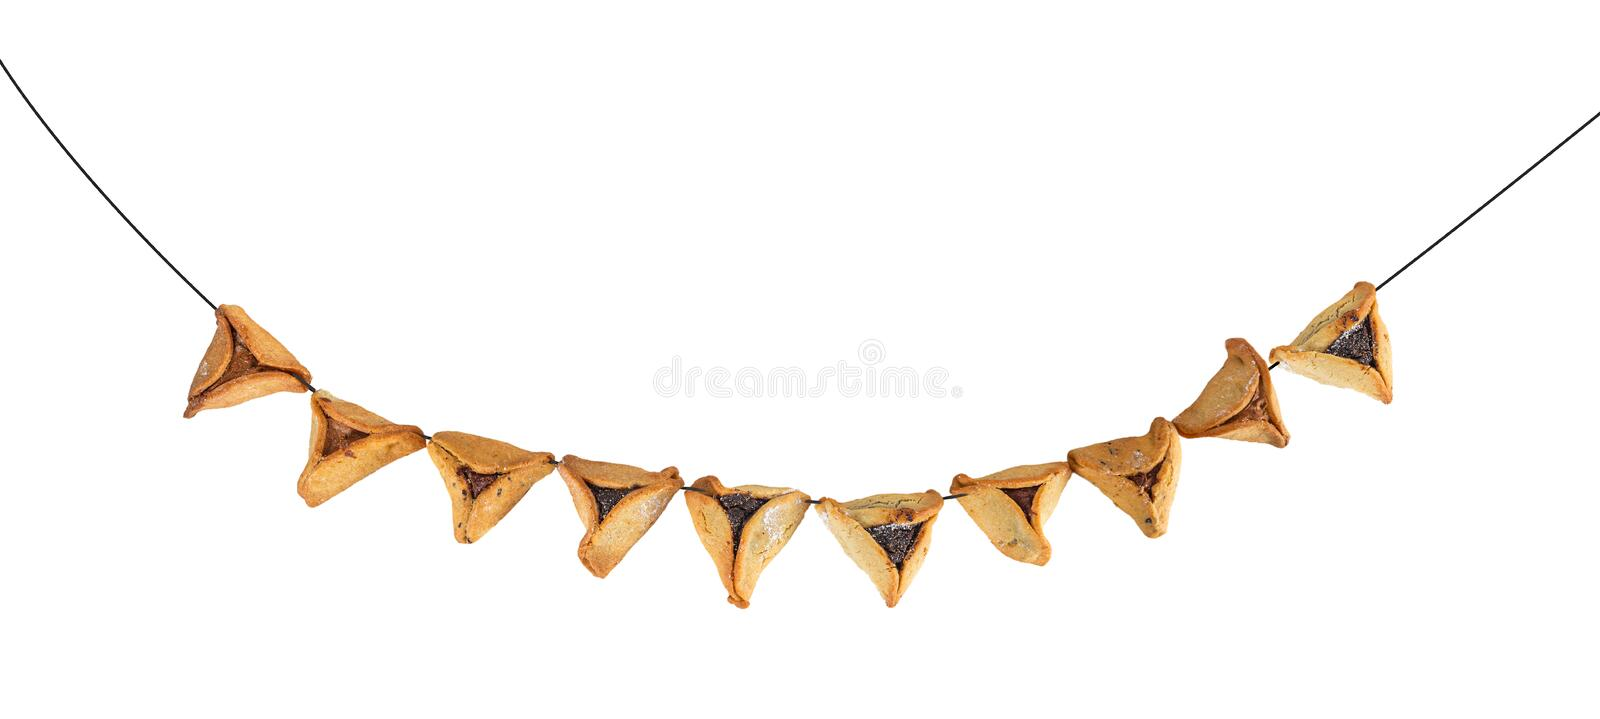 Haman`s ears are also called Hamantaschen - a traditional Jewish pastry for Purim holiday. stock photography